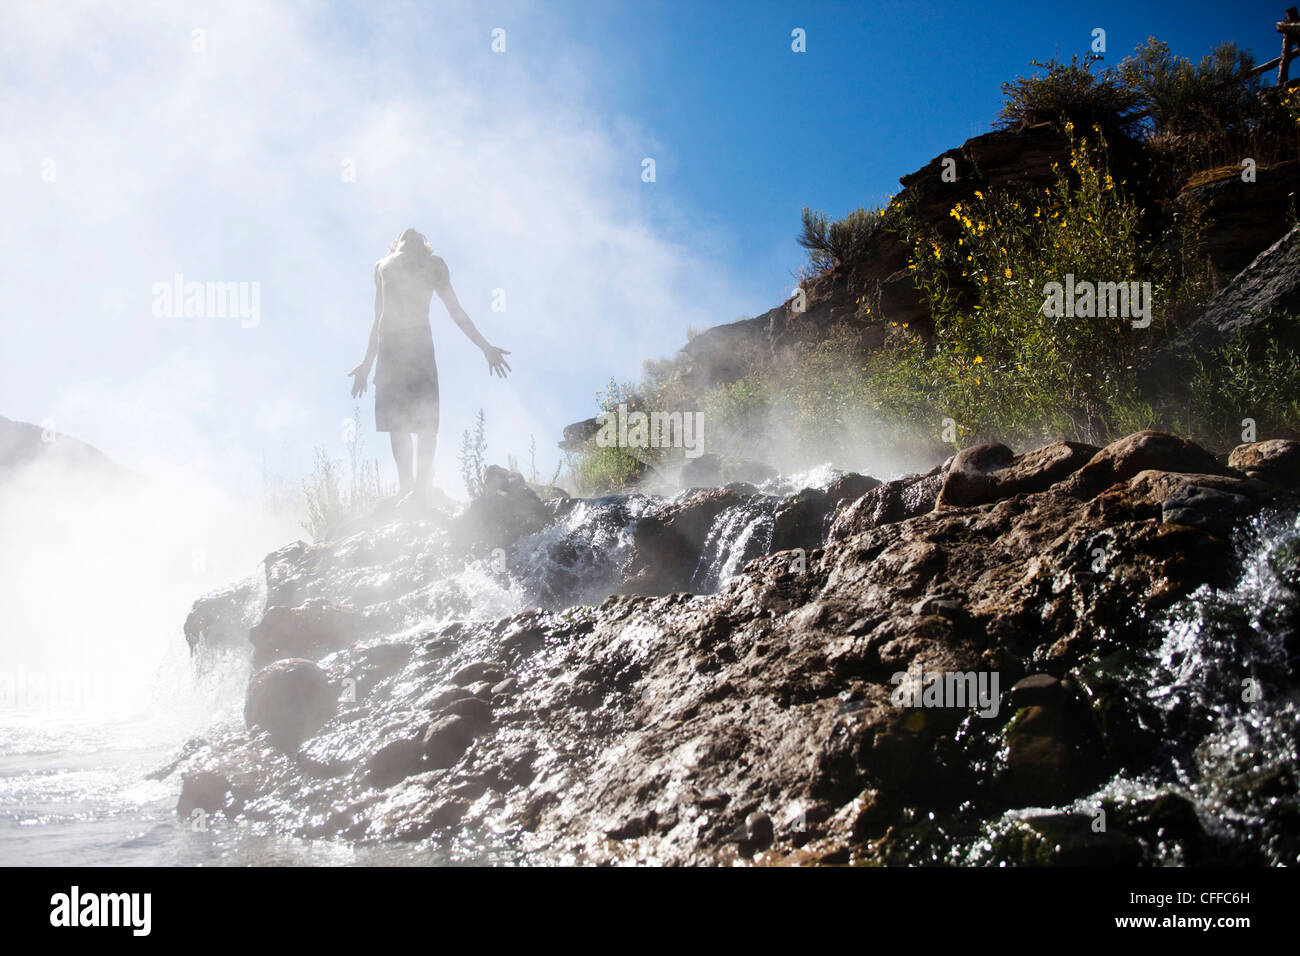 a young man standing in a bank of steam in a hotspring in Montana. - Stock Image